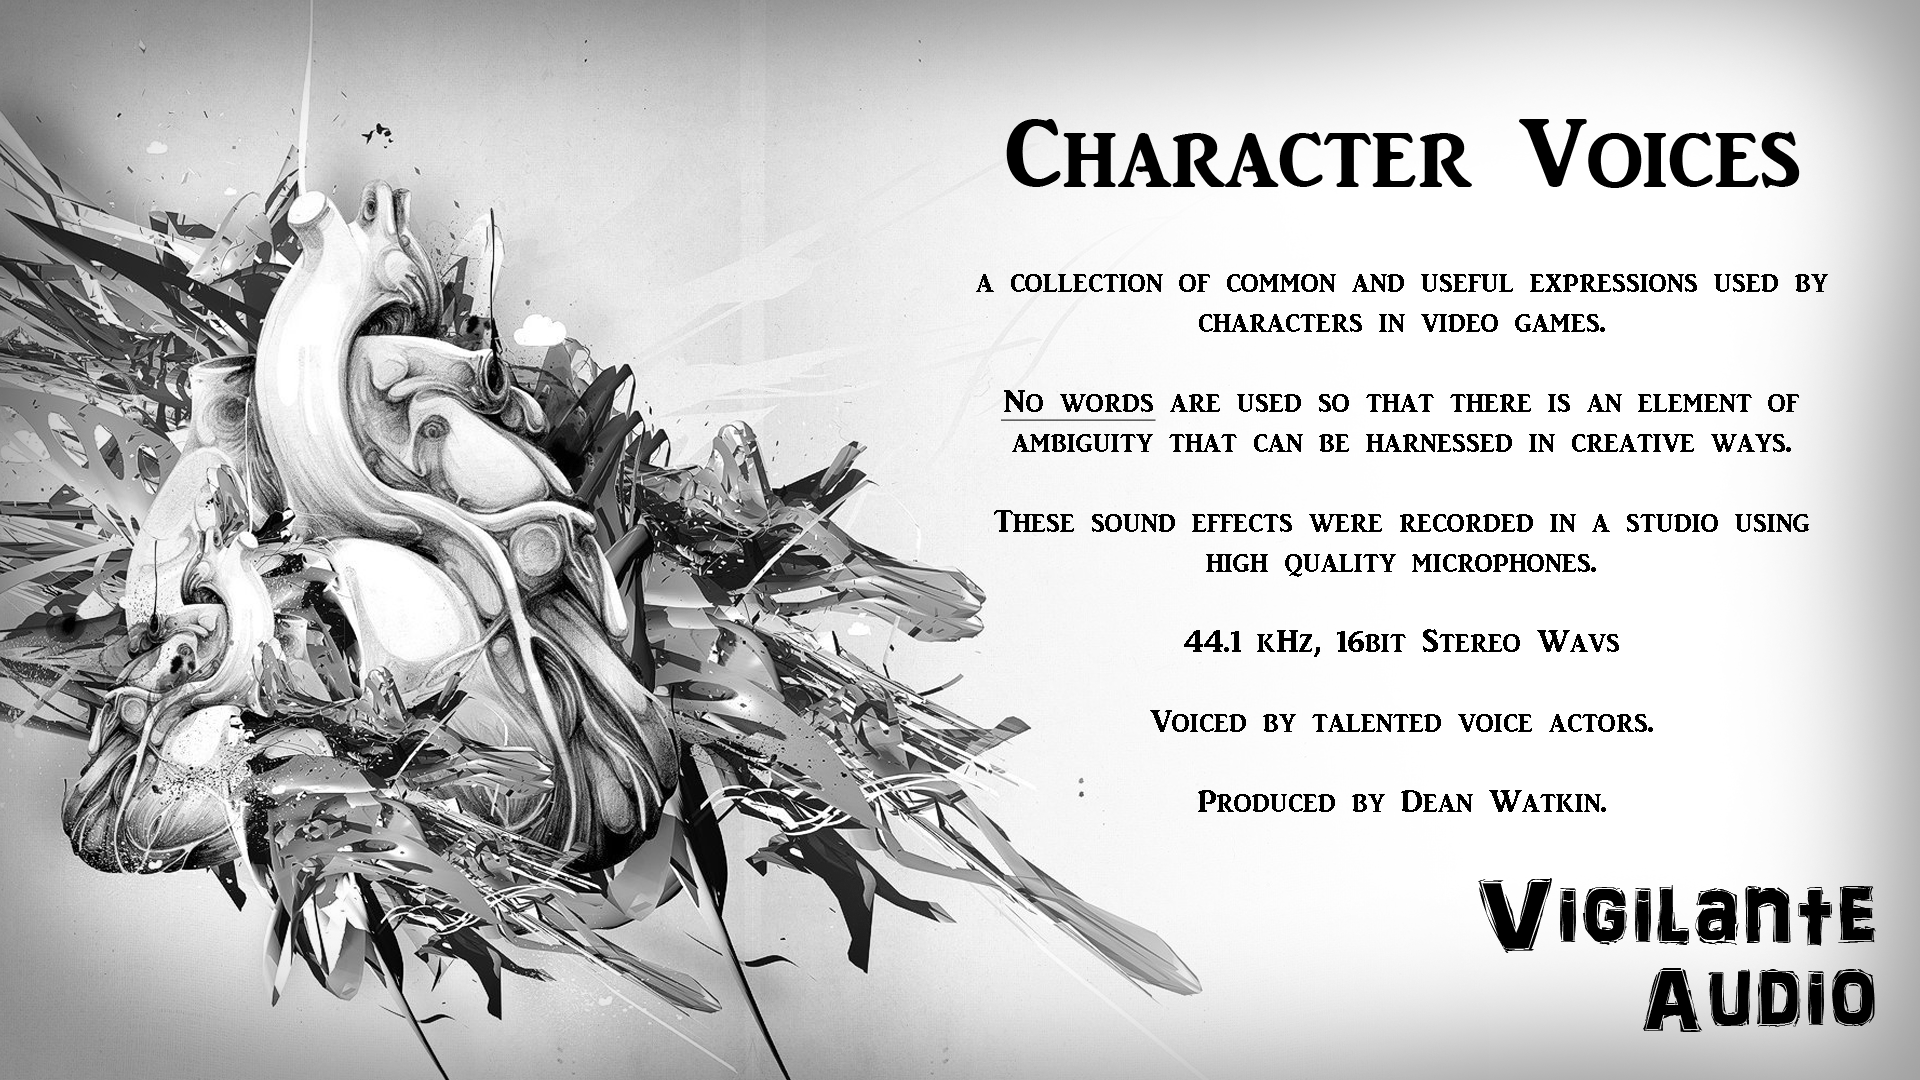 Character Voices by Vigilante Audio